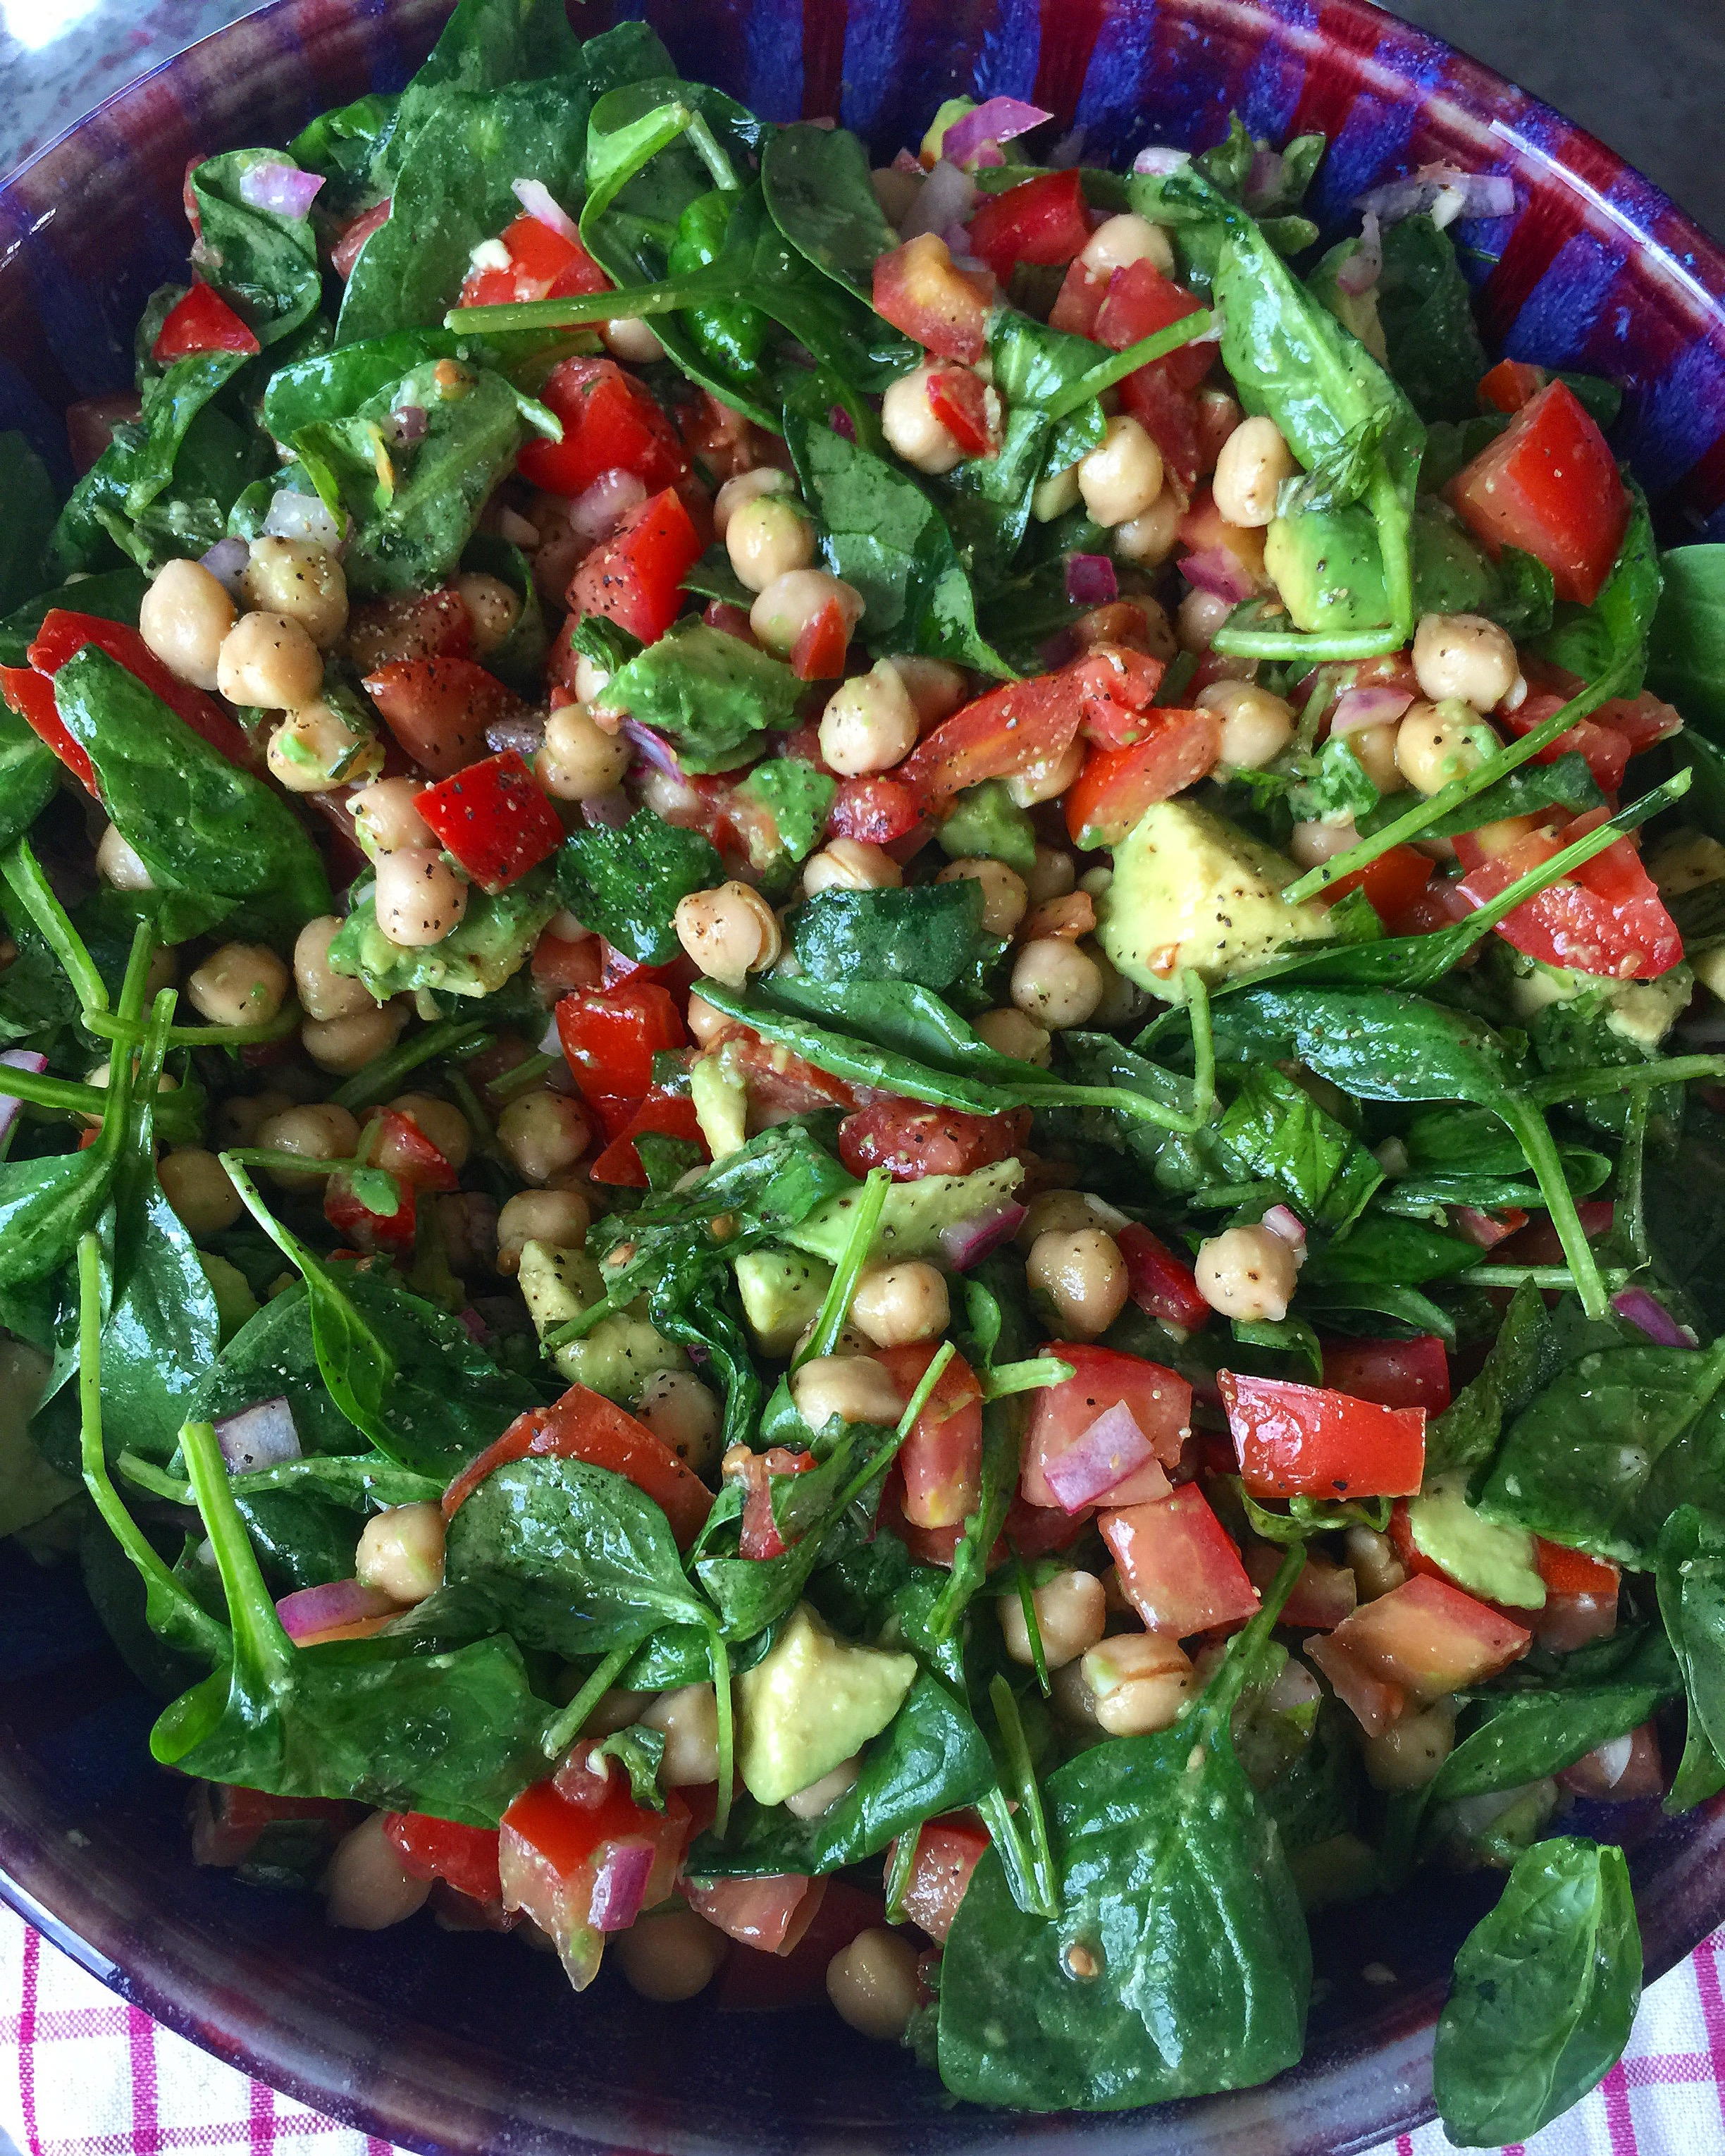 Tomato Avocado Spinach Salad w/ Lemon Basil Vinaigrette